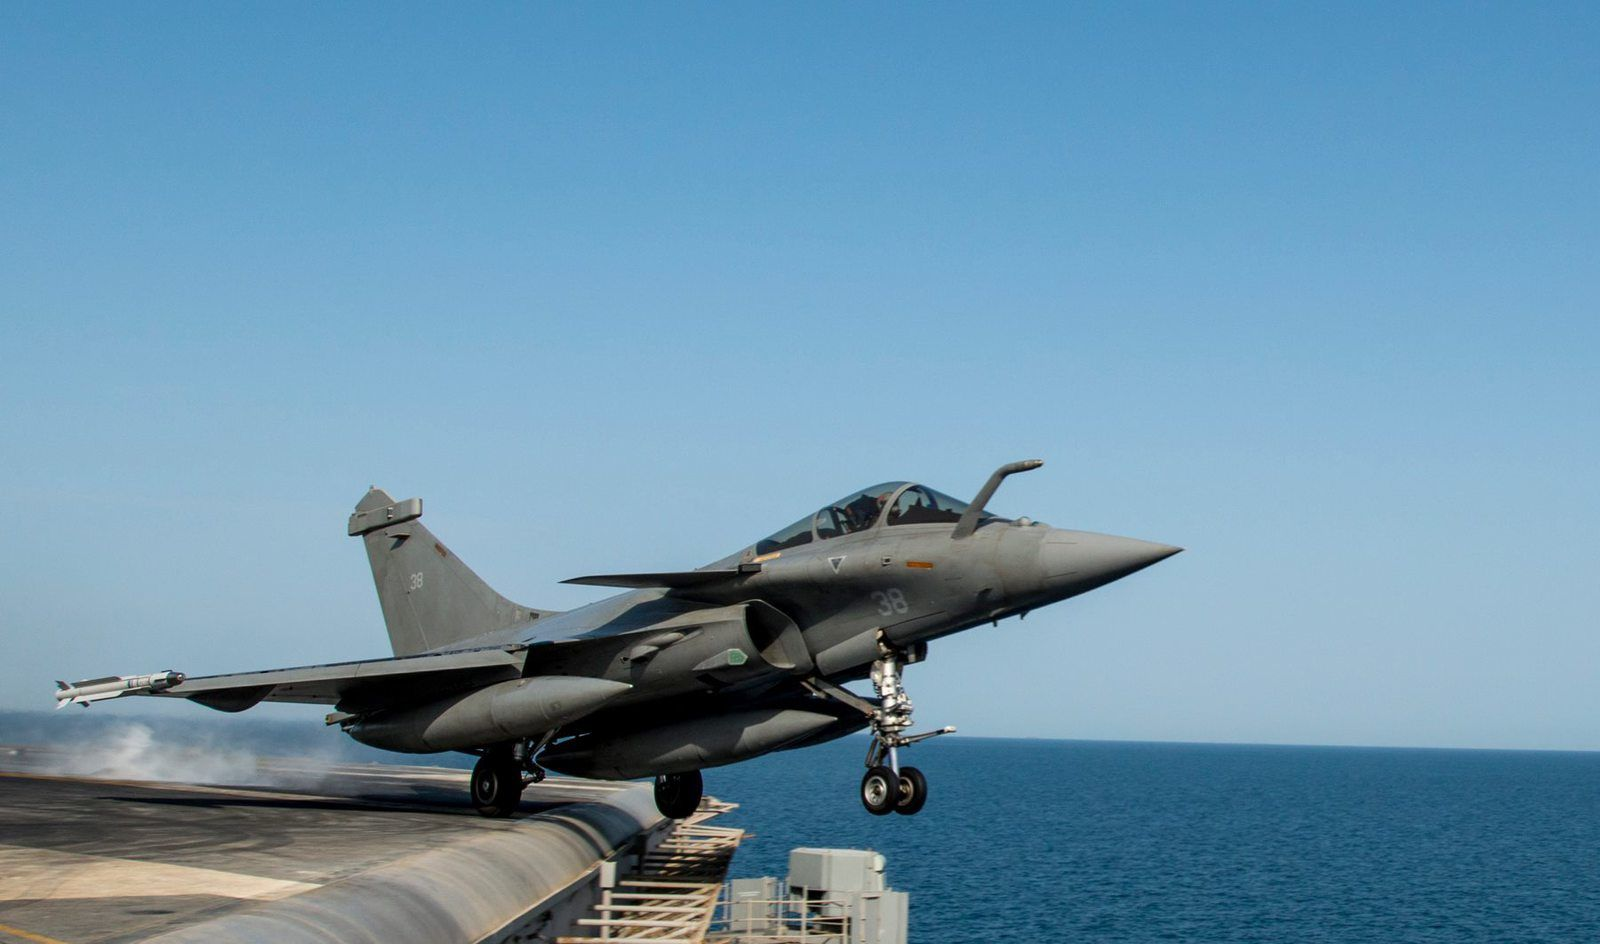 Rafale Leaves Carl Vinson